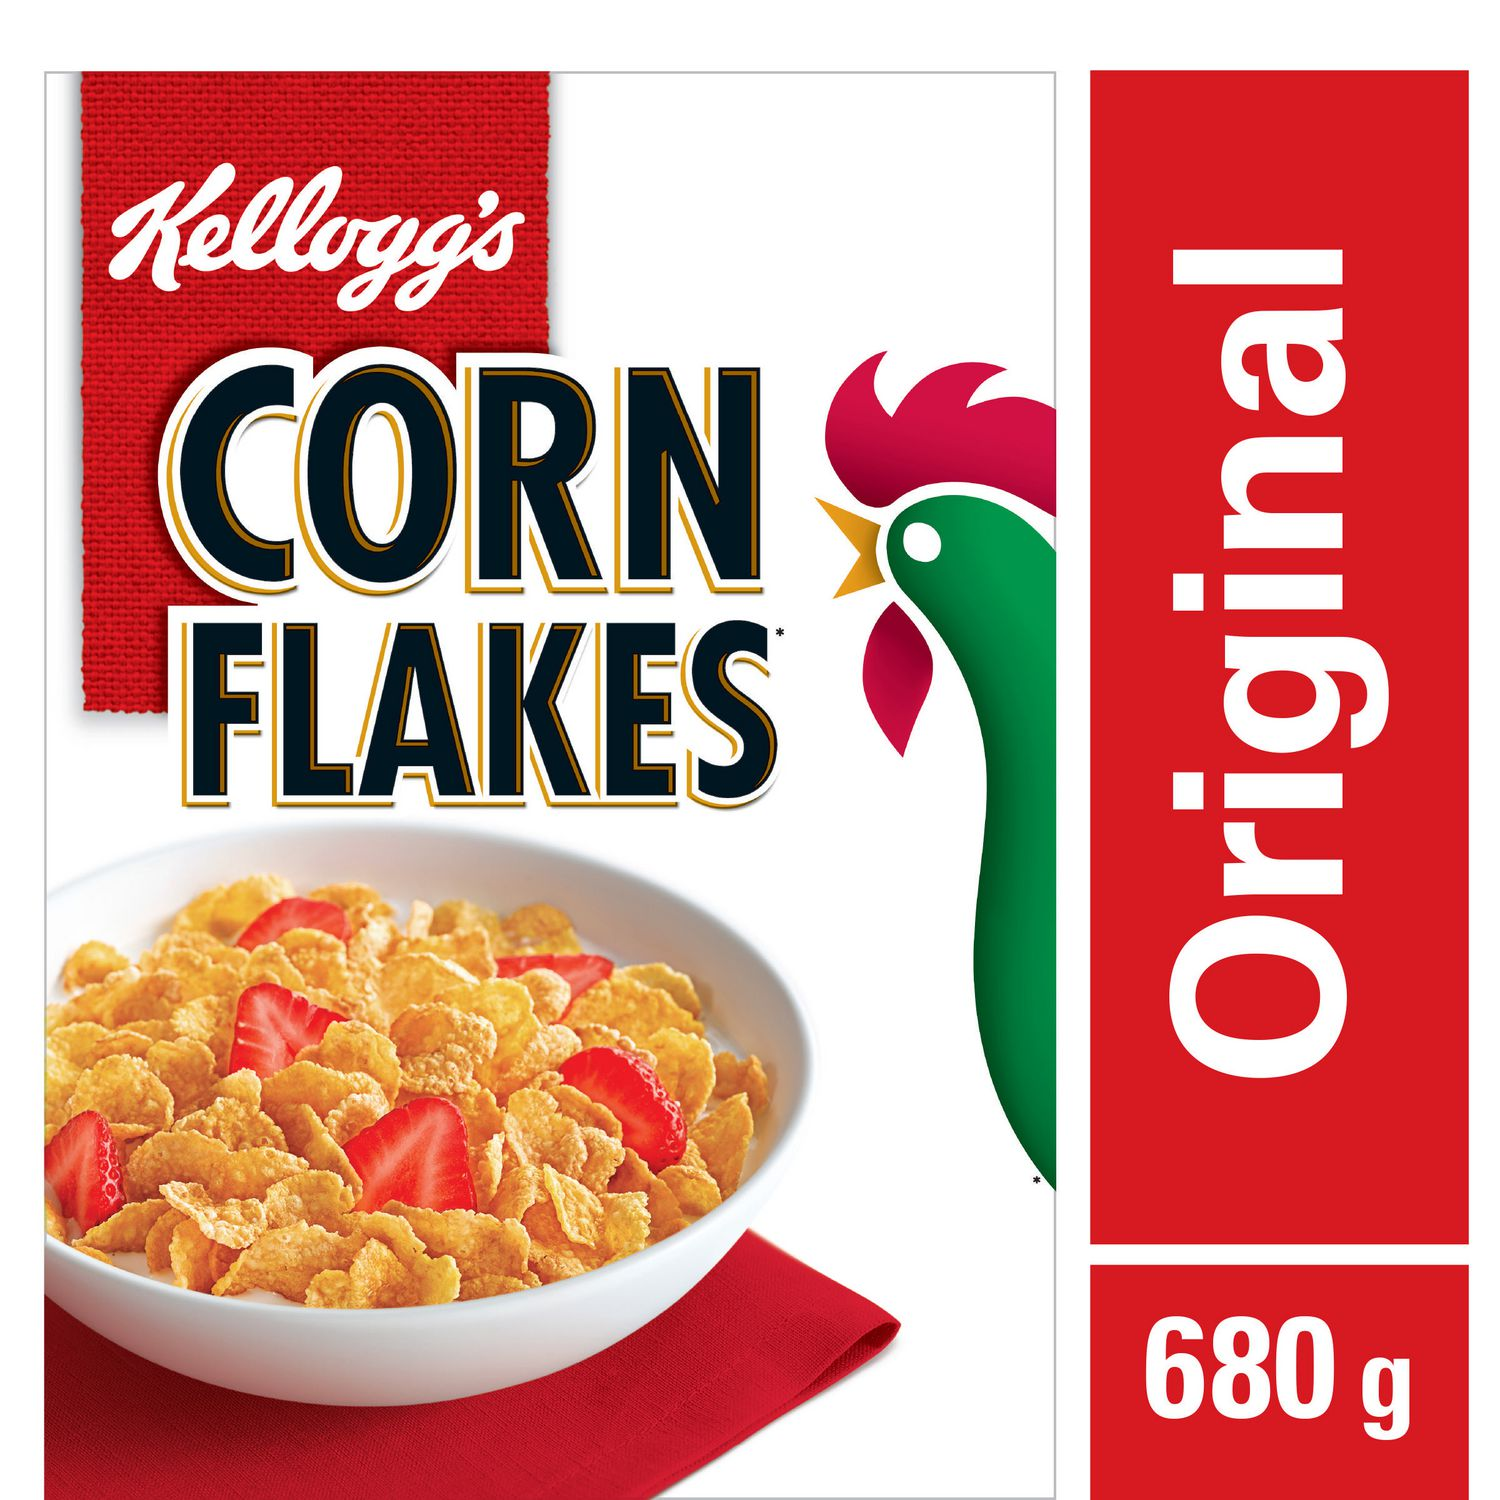 Corn Flakes Nutrition Label